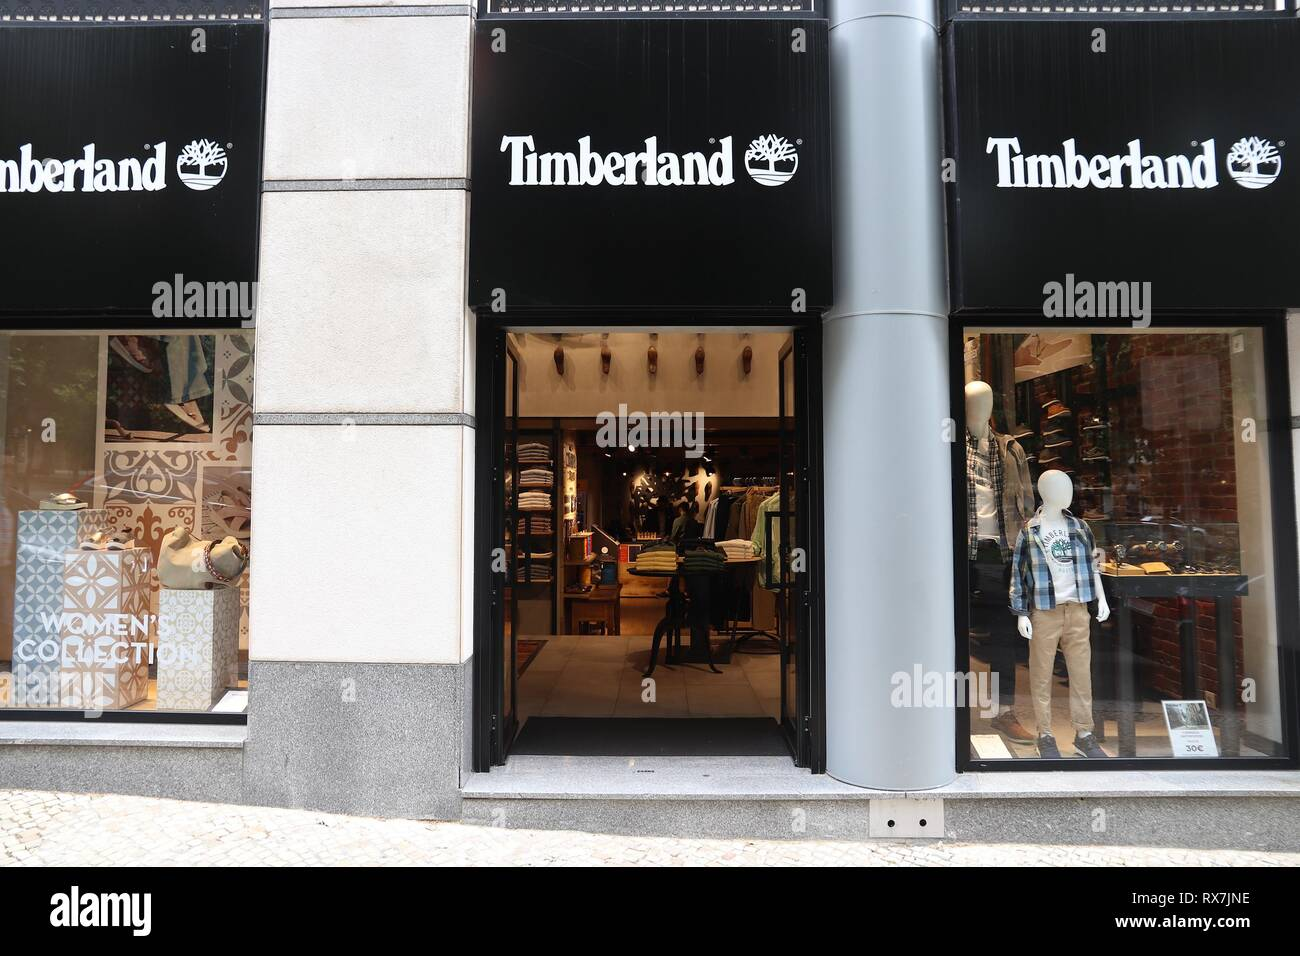 Commercial Timberland High Resolution